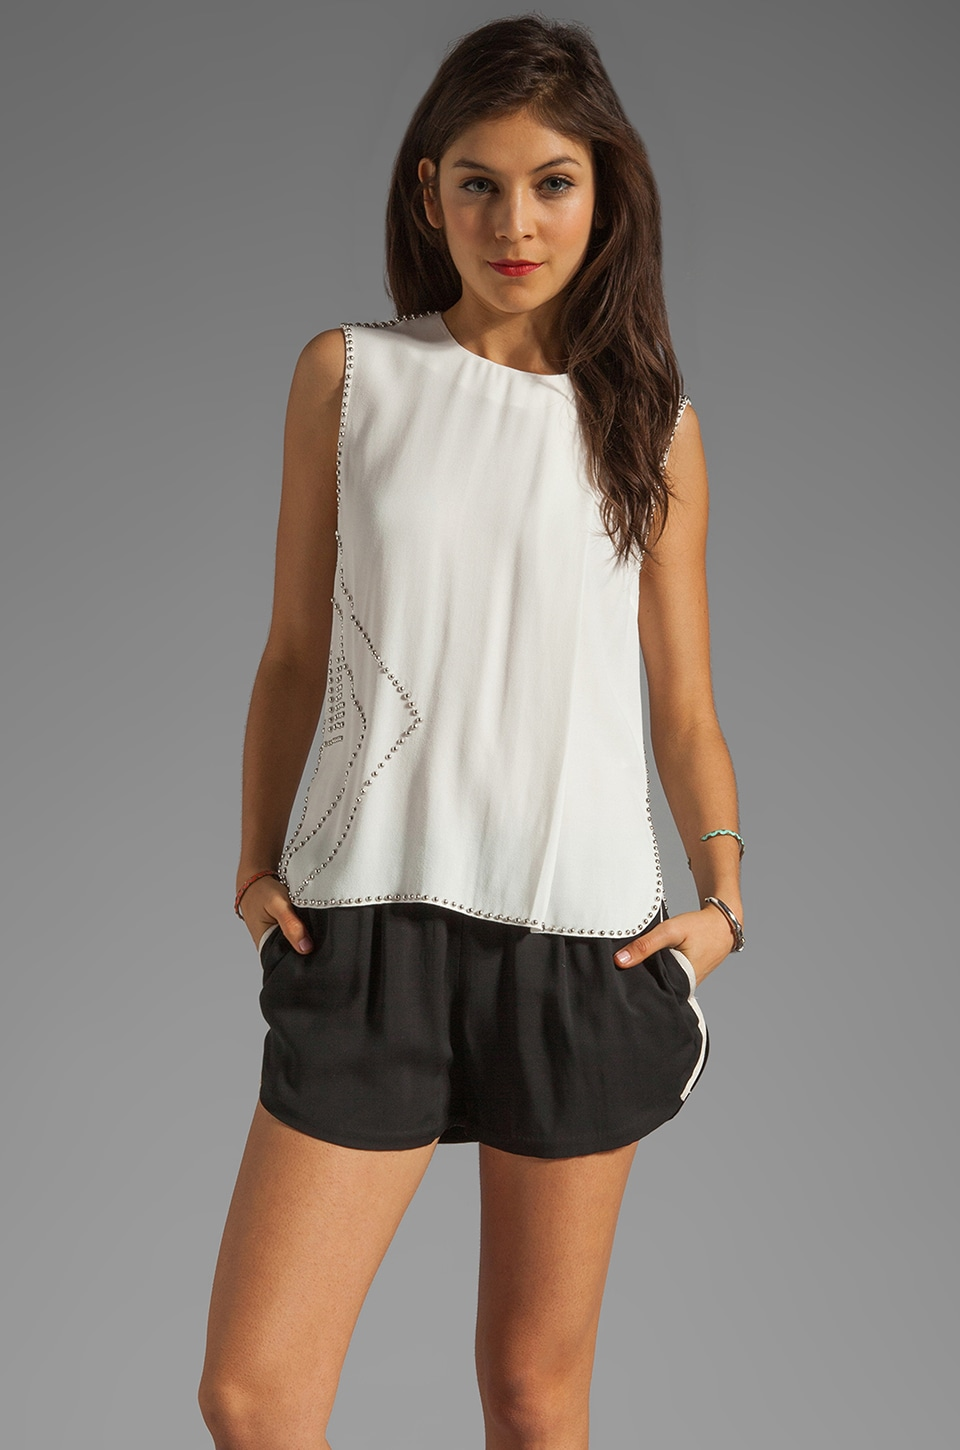 By Malene Birger Modern Flow Elluan Tank in Cream